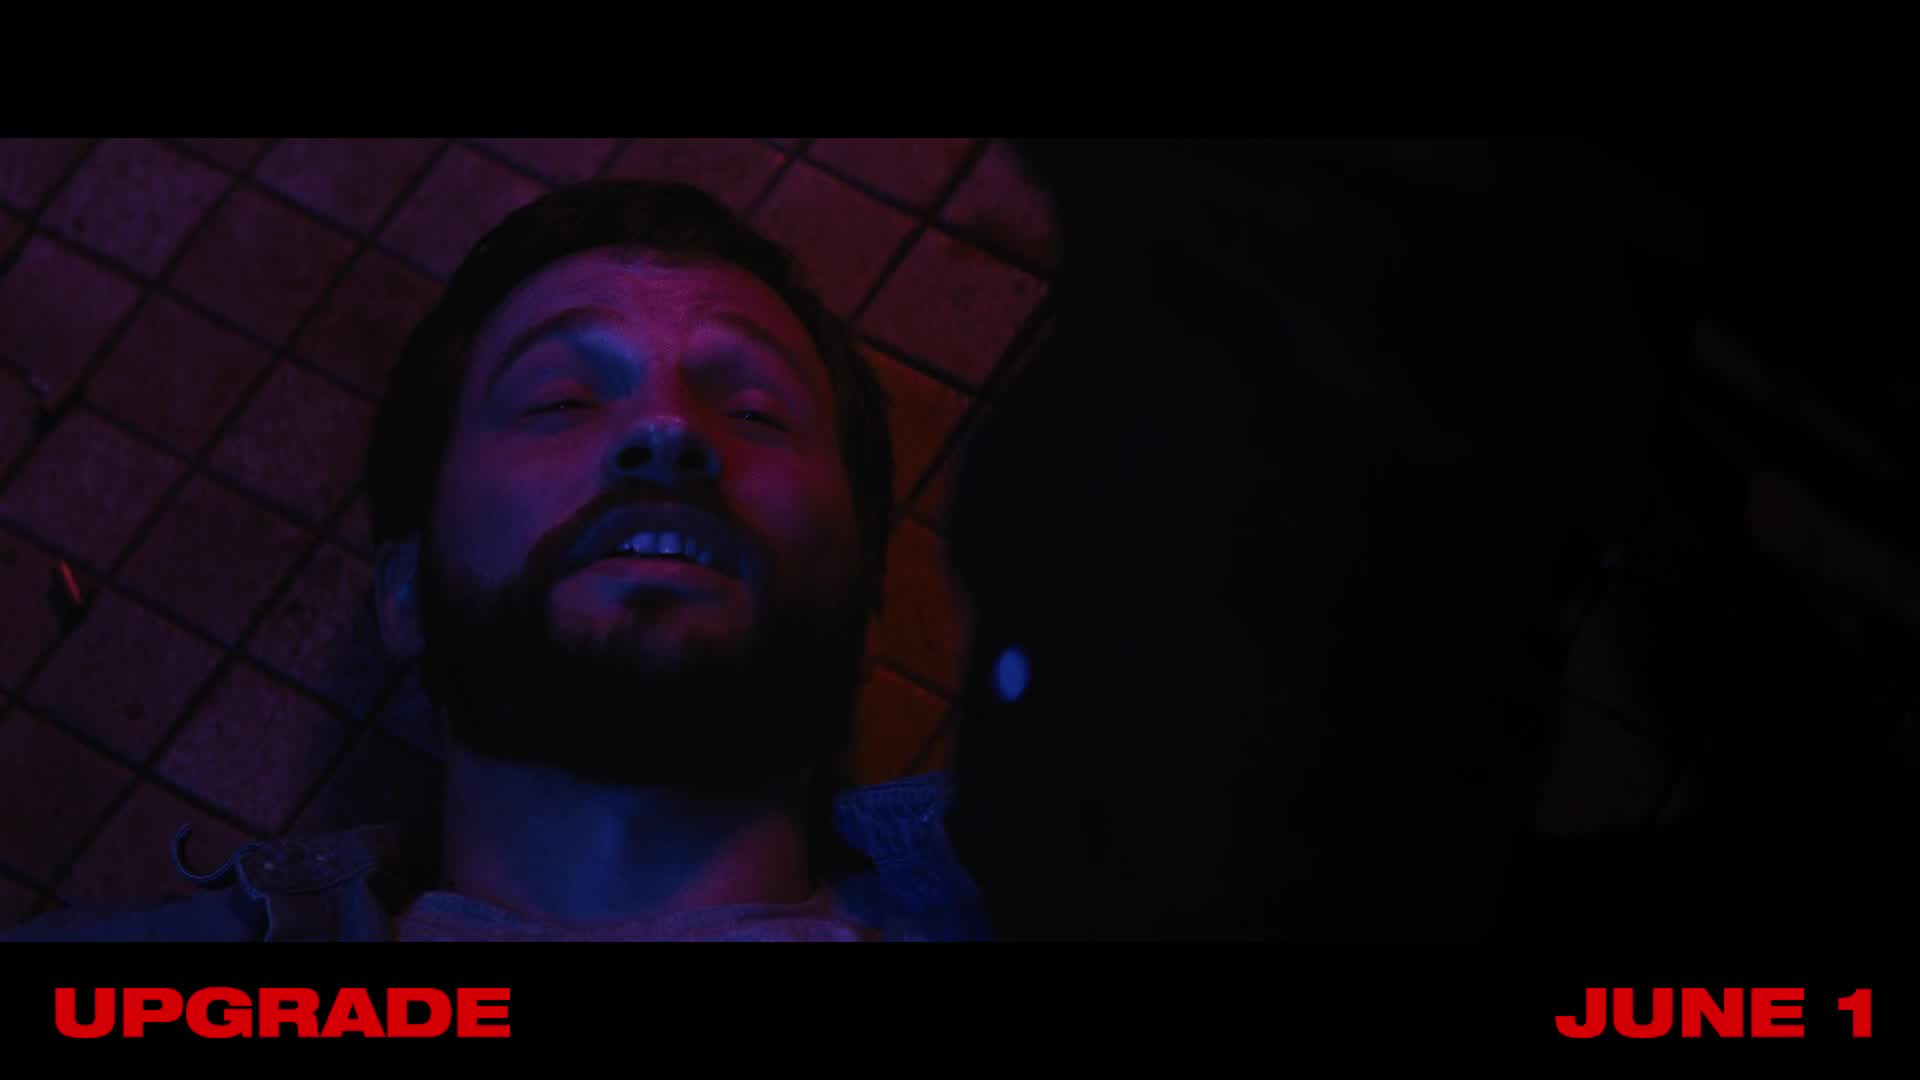 Upgrade full movie hd download